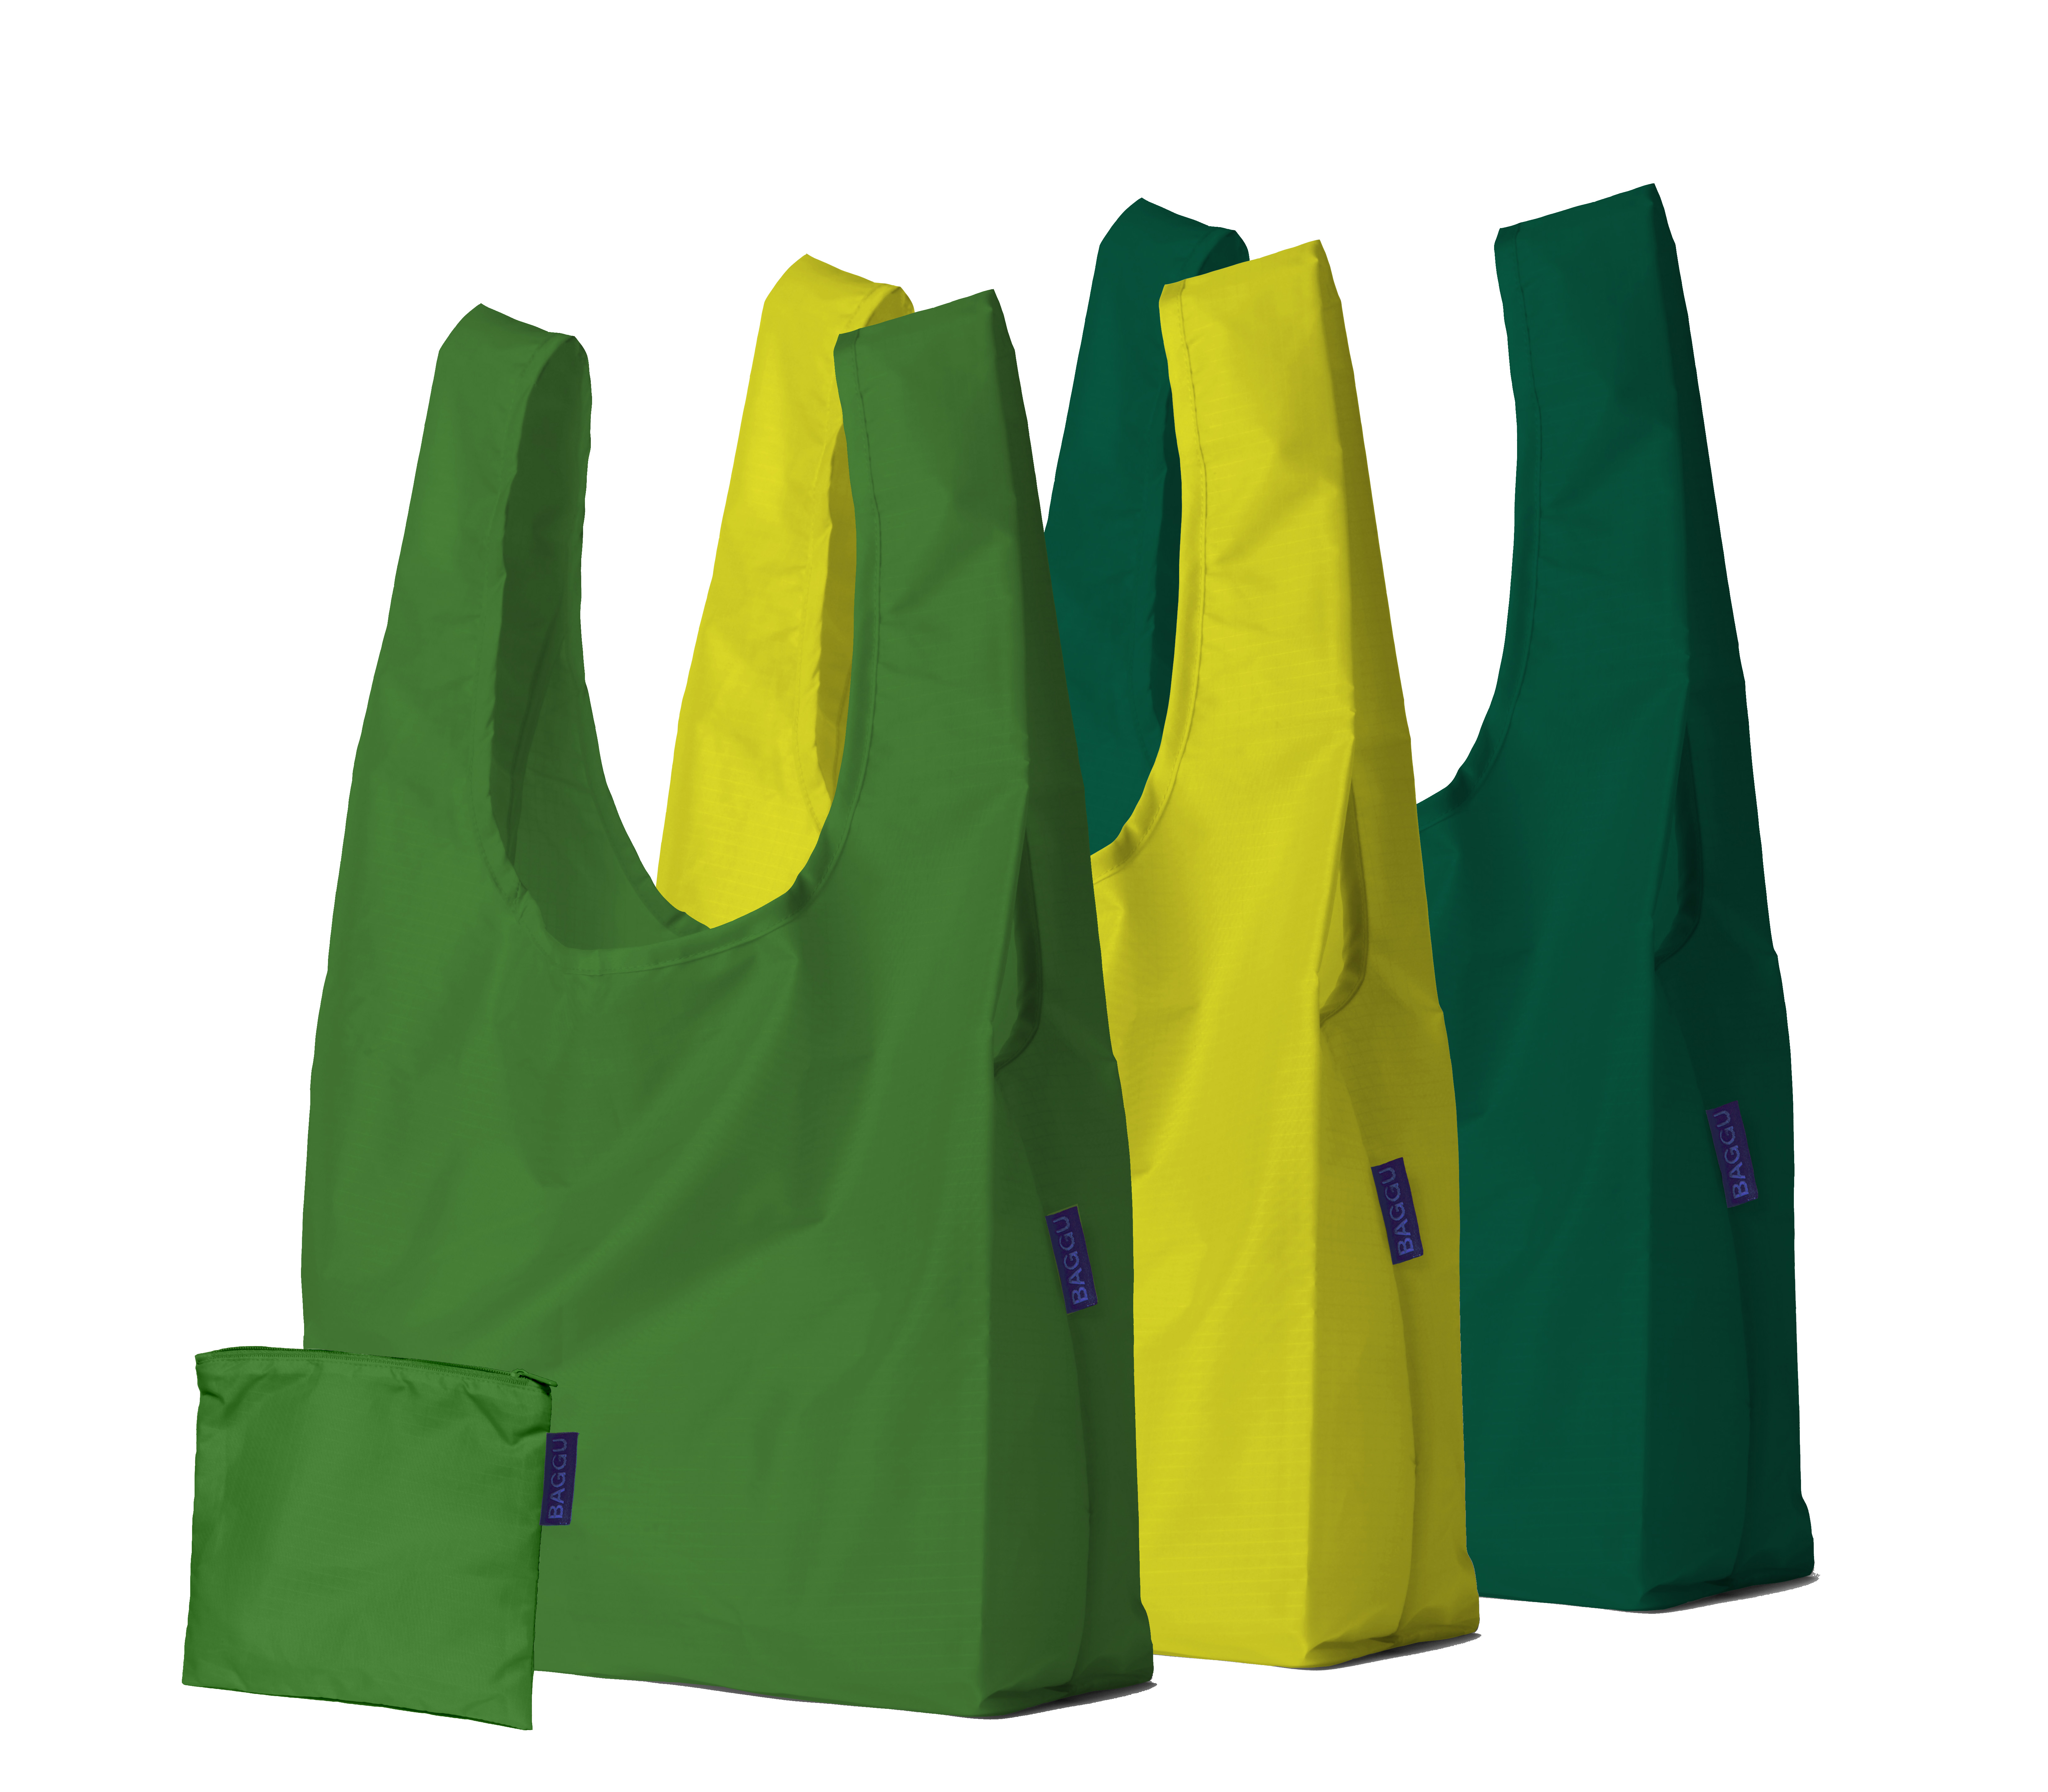 Set of three reusable nylon tote bags in shades of green